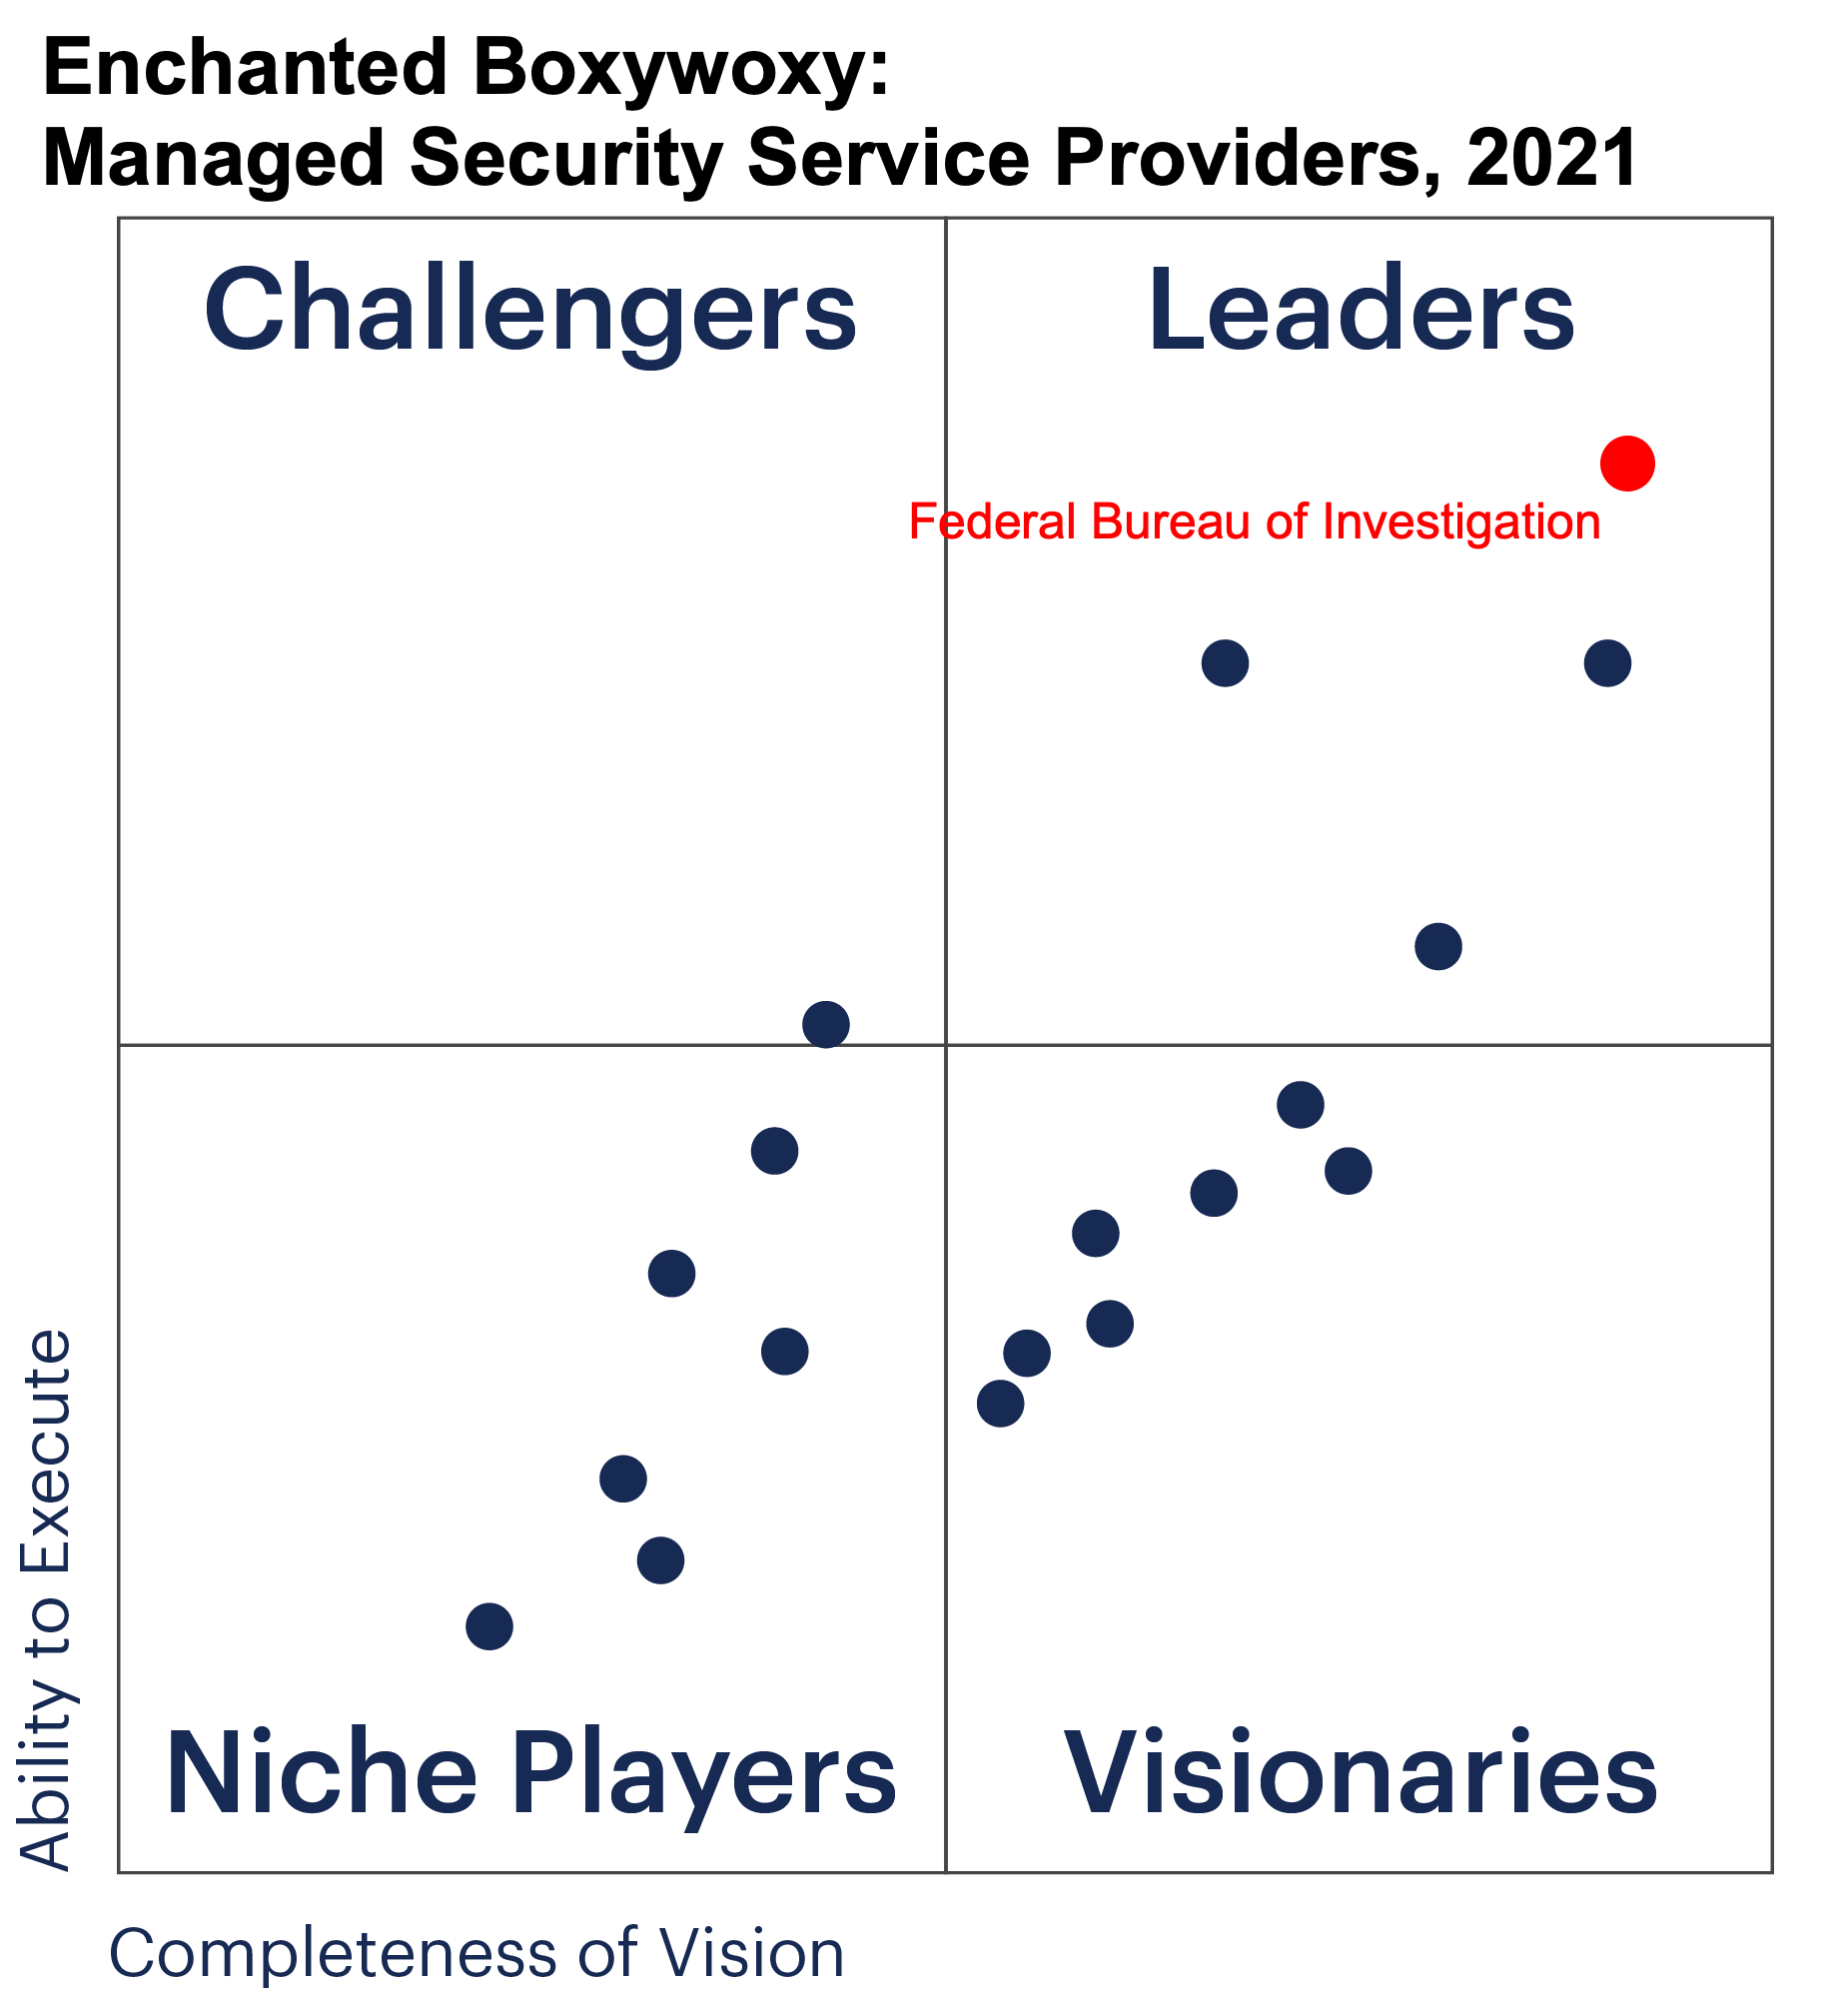 Enchanted Boxywoxy, a two-by-two matrix showing a series of dots against 'vision' and 'execution' with the FBI in the top-right, as favoured by many IT analysts